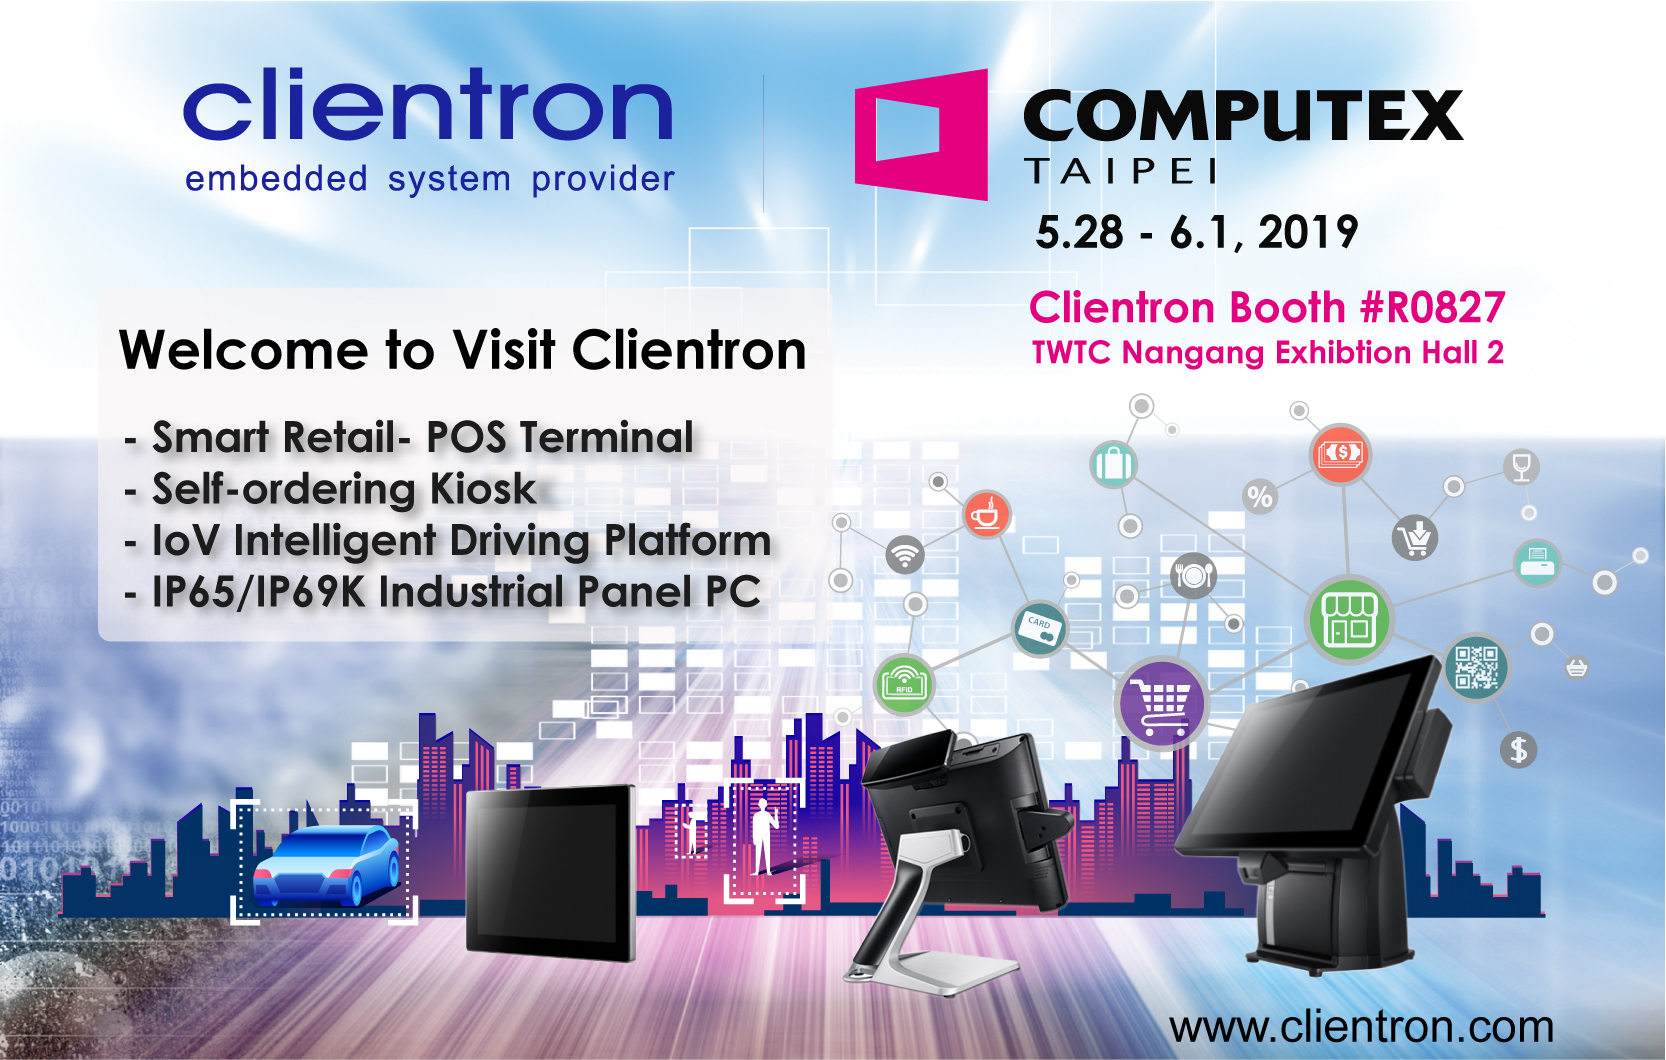 Clientron Showcases the Latest POS System and IoV Intelligent in